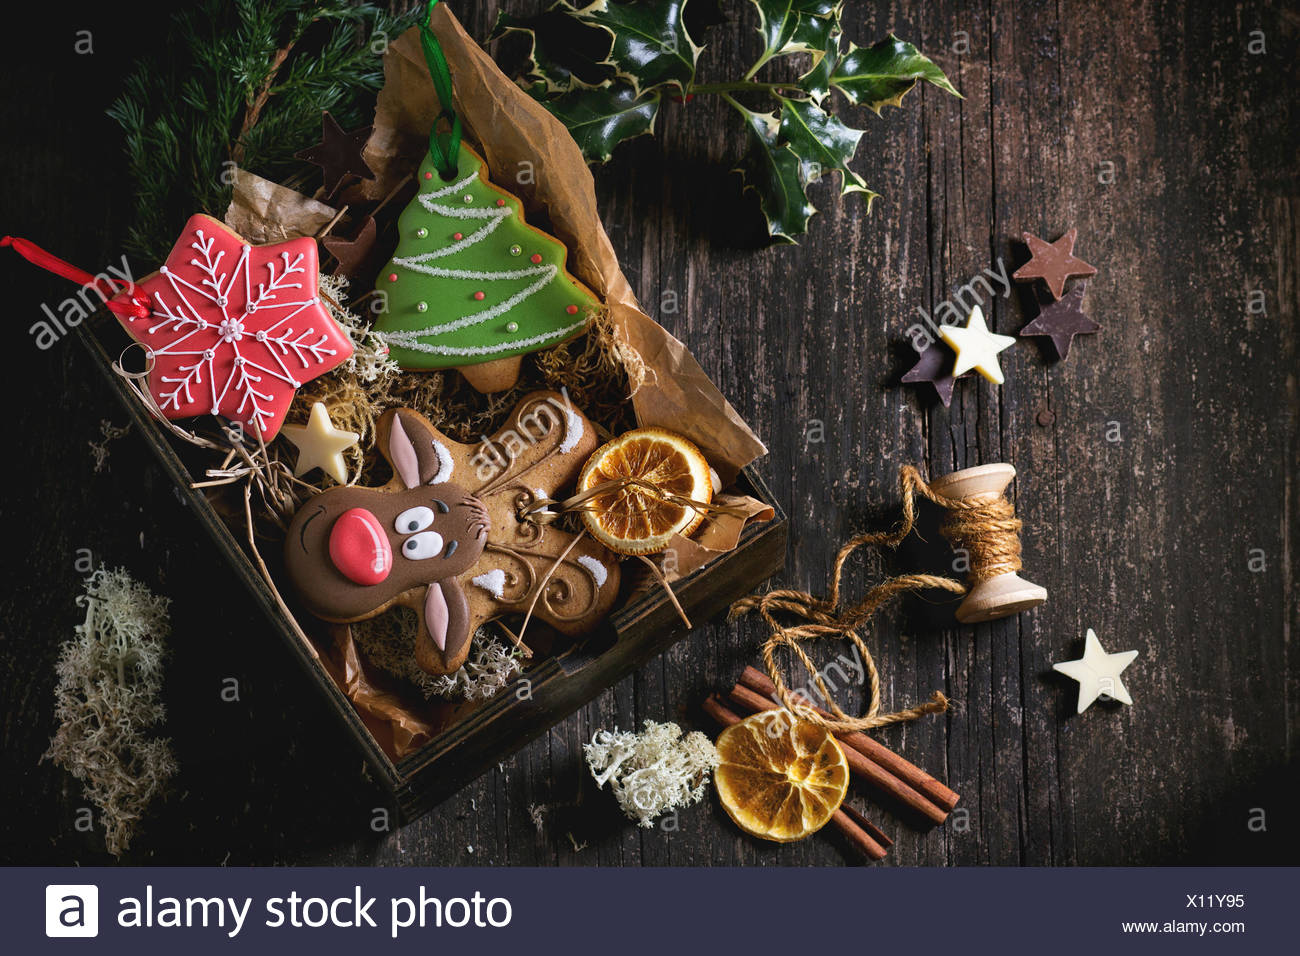 Christmas Handmade patterned gingerbreads as Christmas tree, reindeer Rudolph and snowflake shapes in wooden box over old wooden - Stock Image